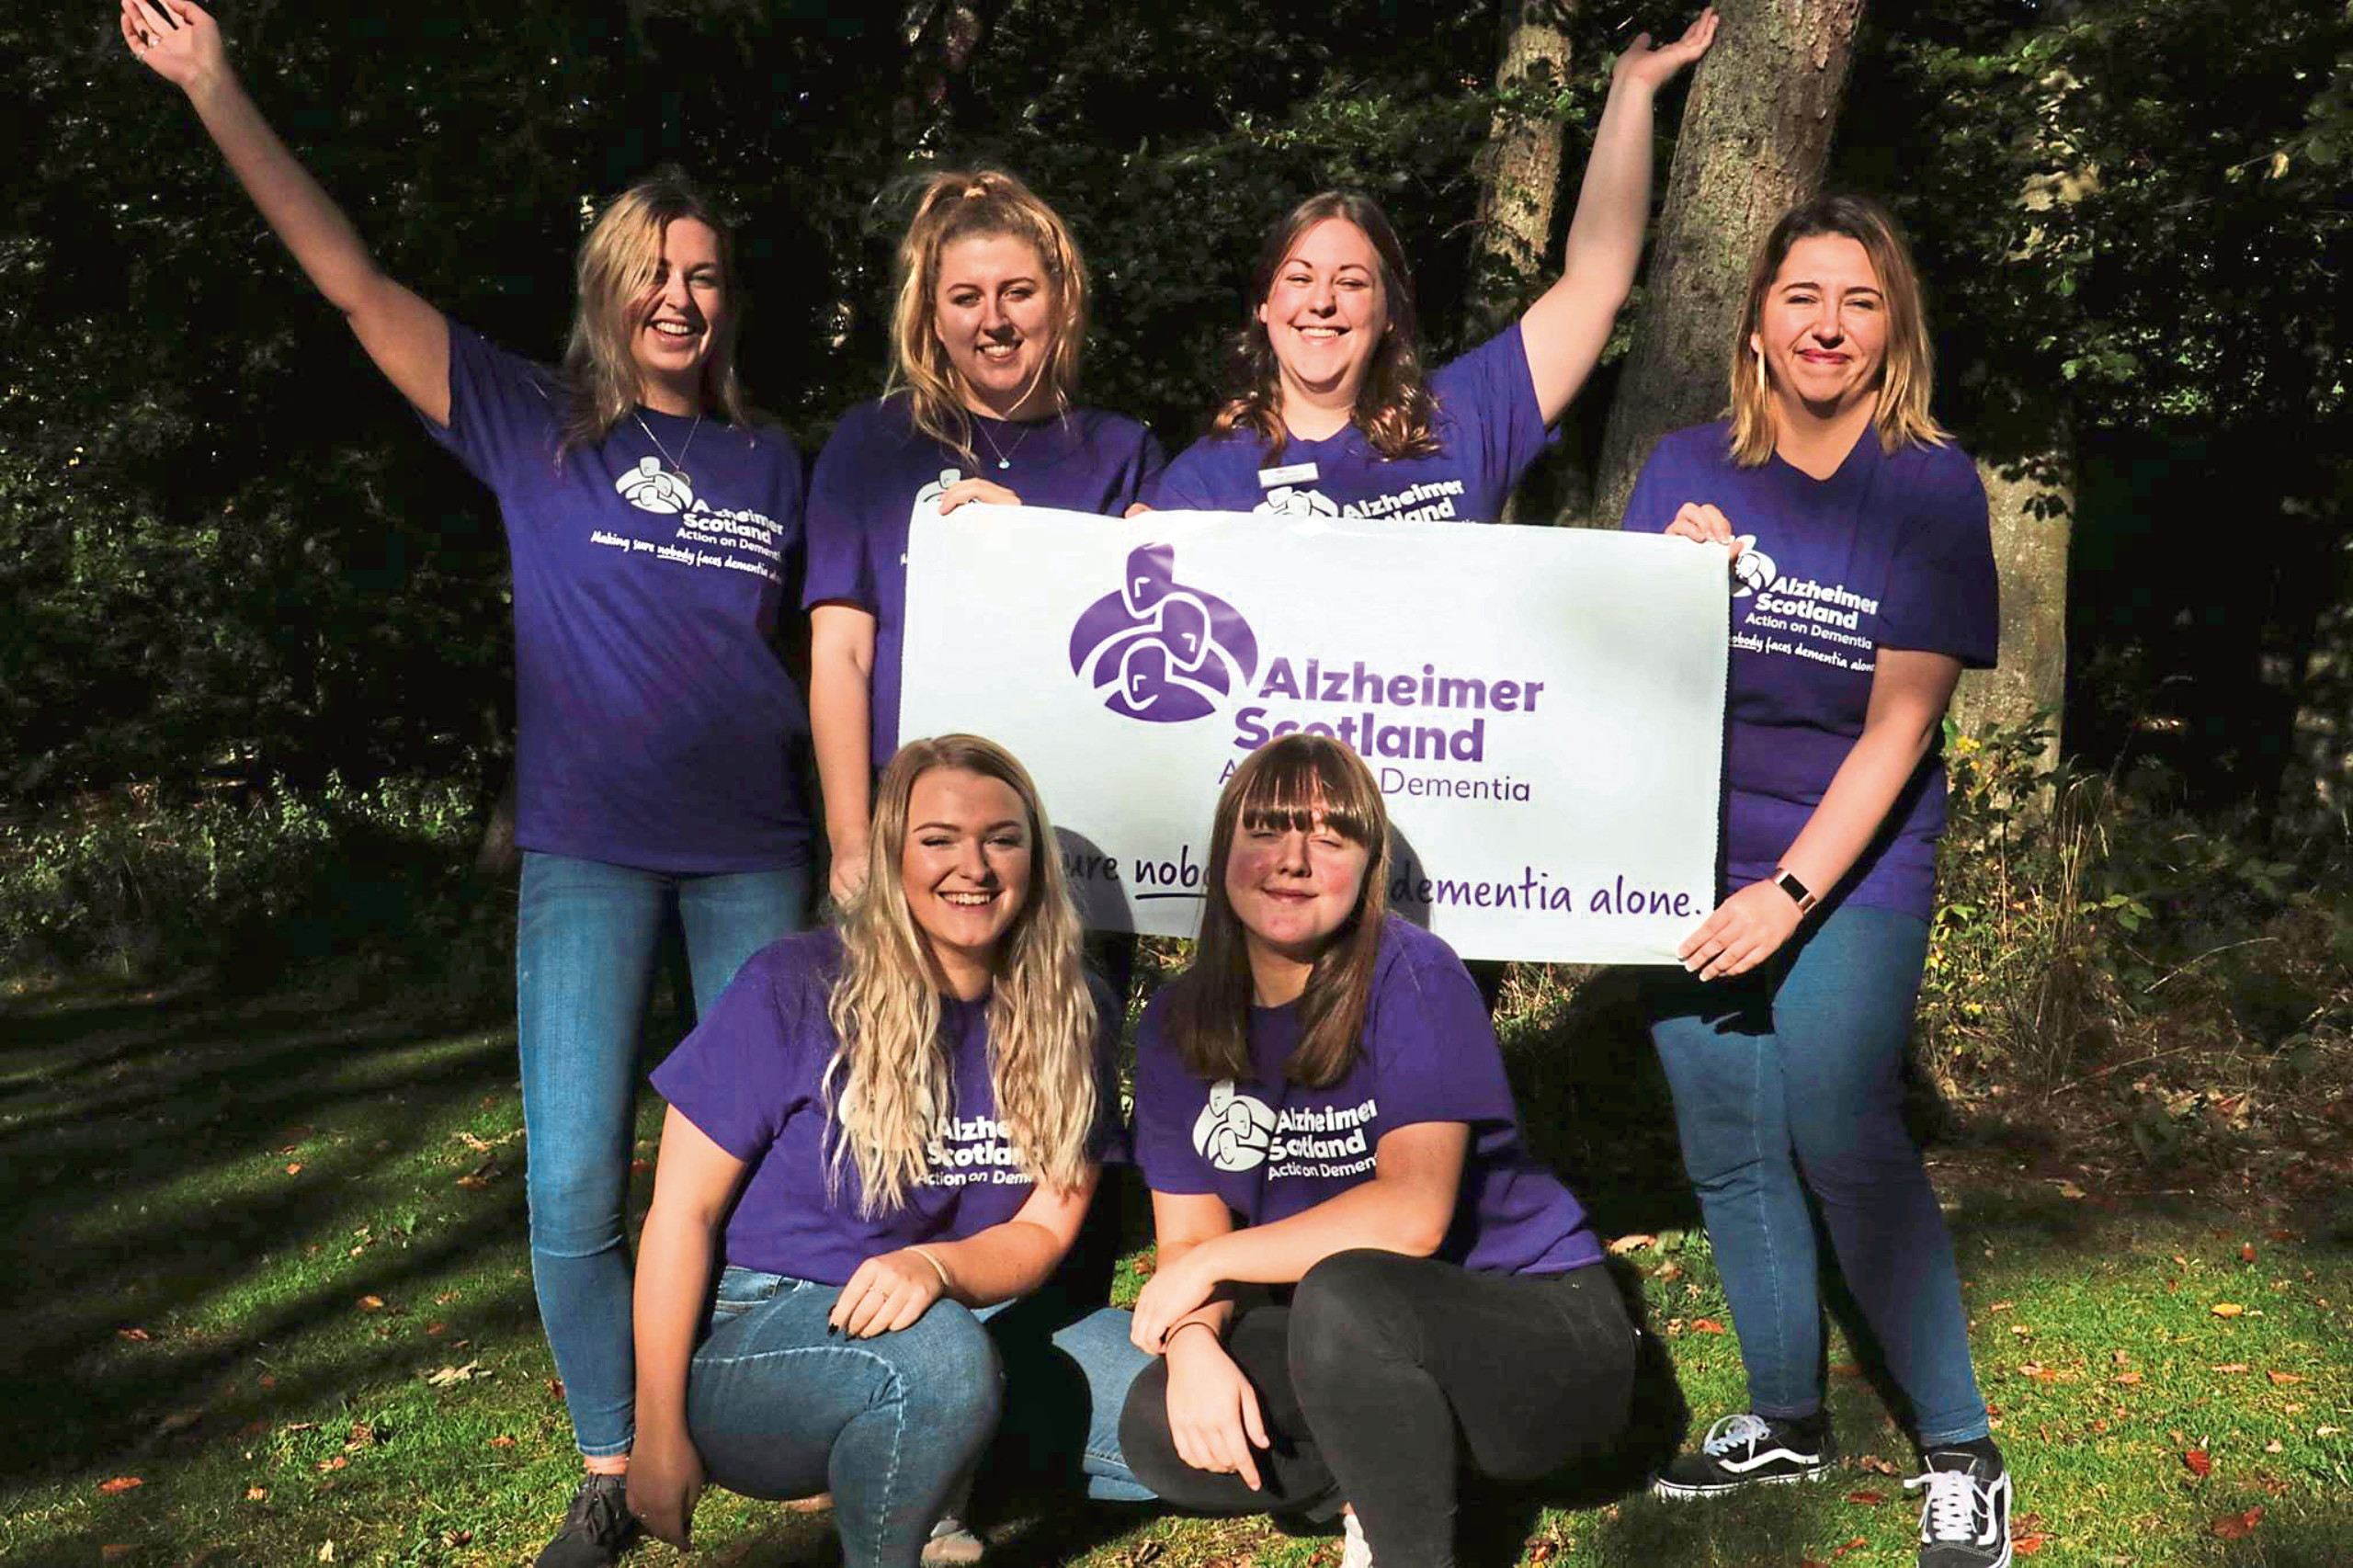 The Memory Lane Events team picked Alzheimer Scotland as their charity and are organising a dance afternoon at the Beach Ballroom